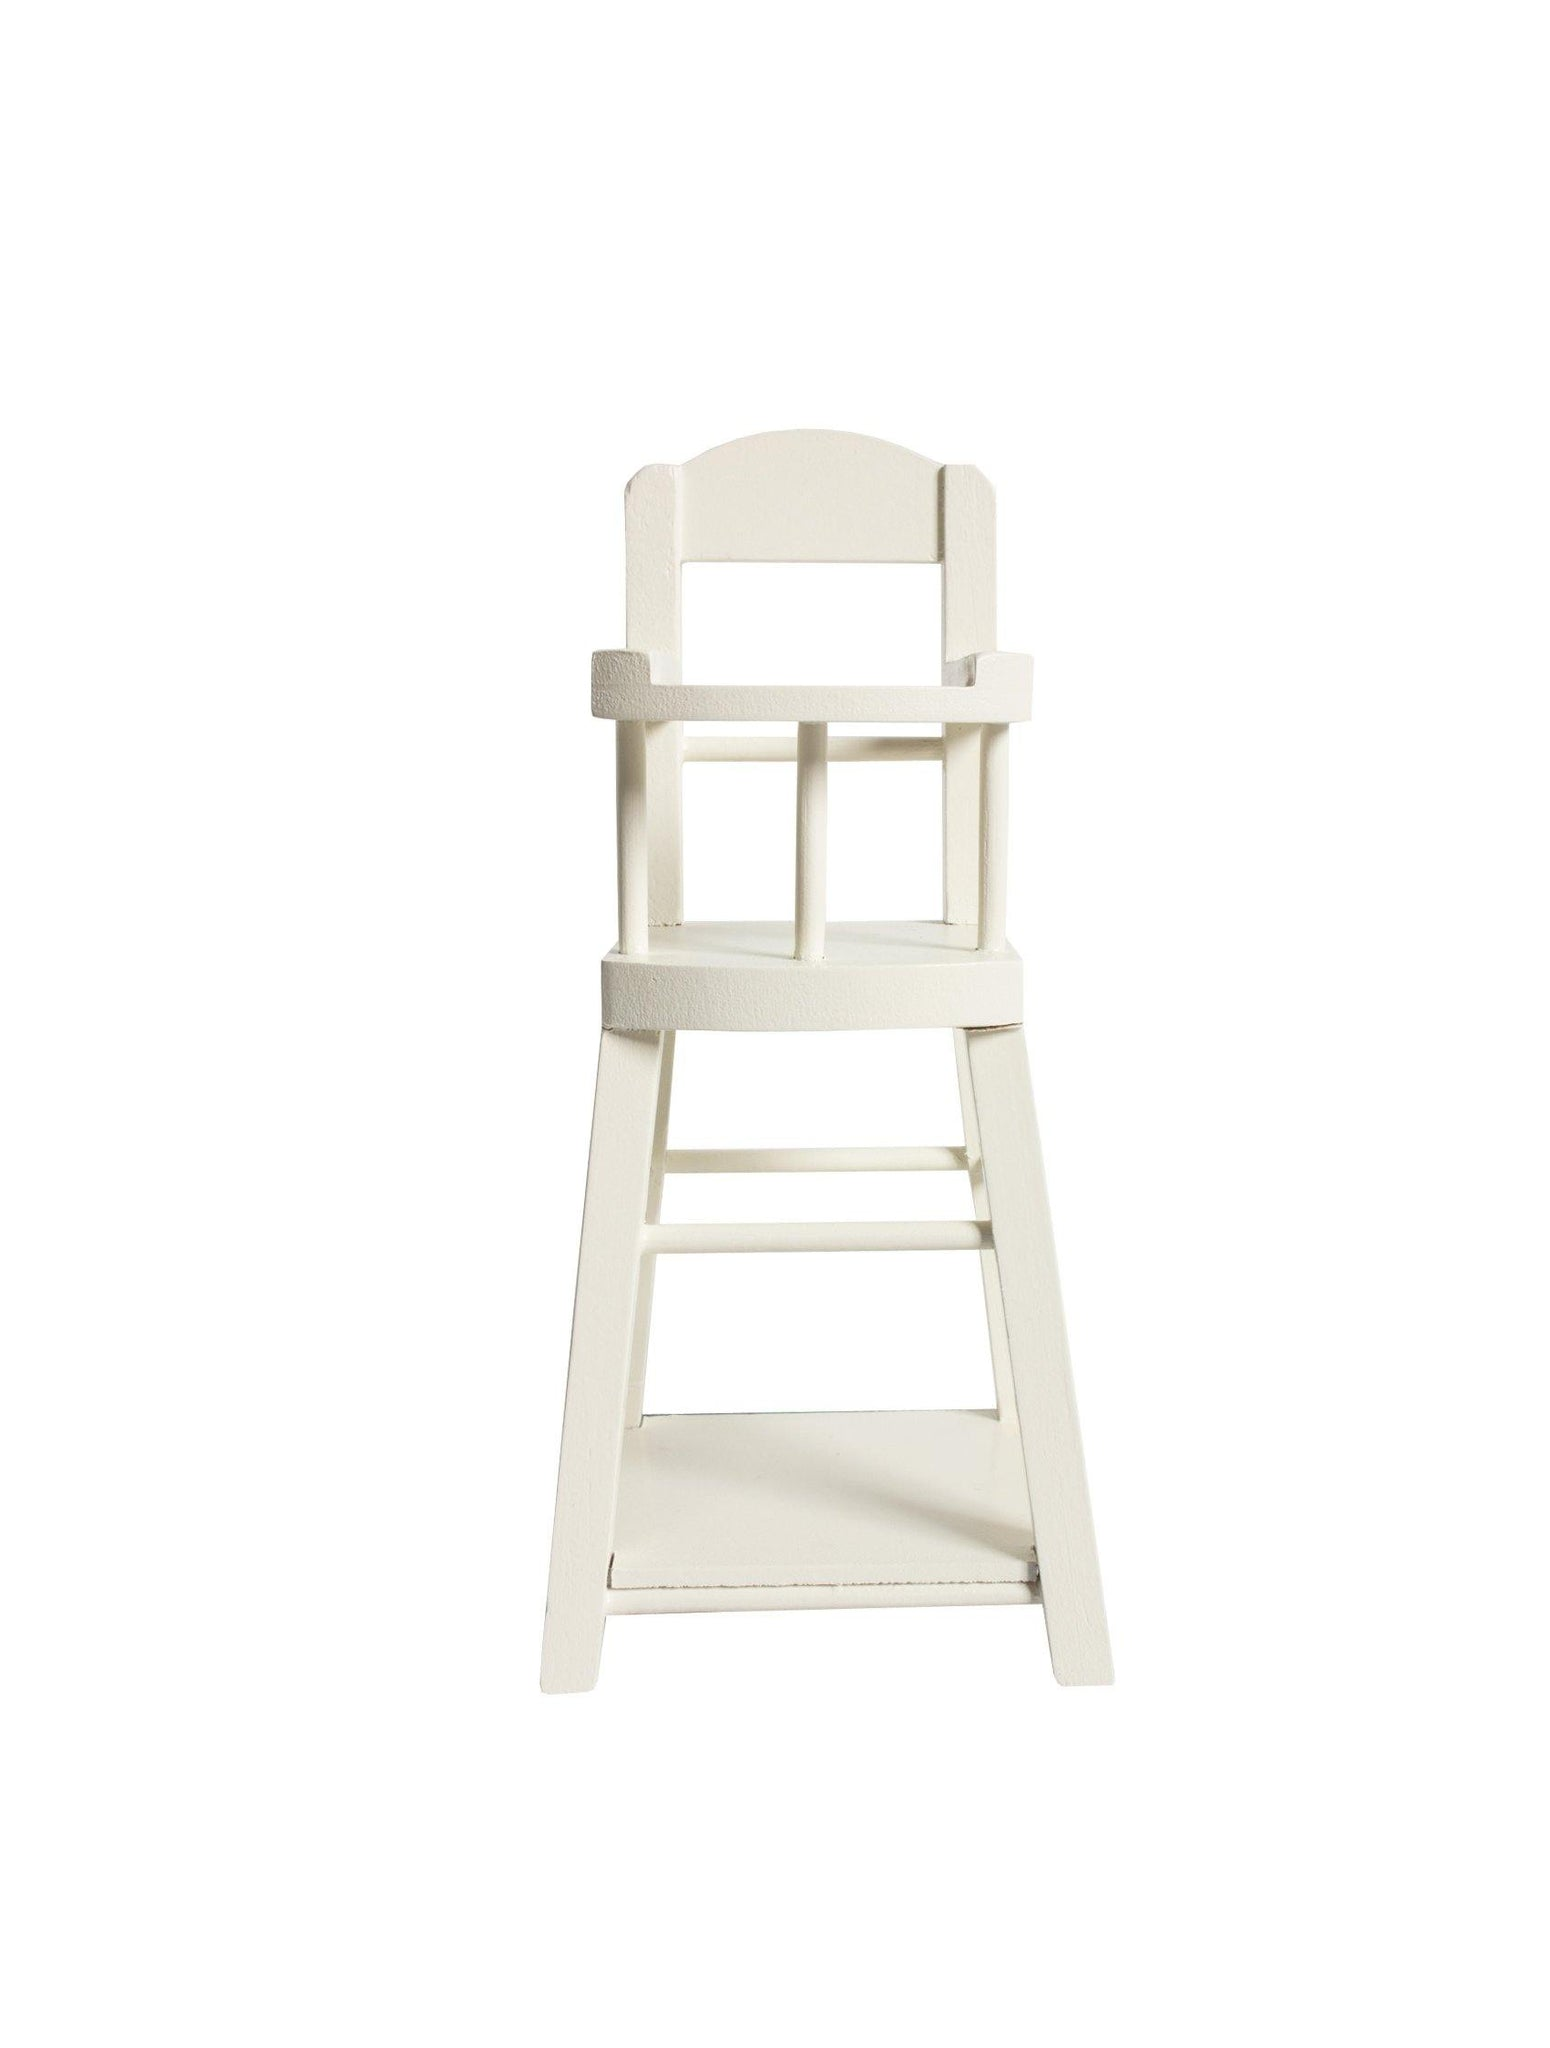 11-5034-00 Maileg Micro Wooden Highchair